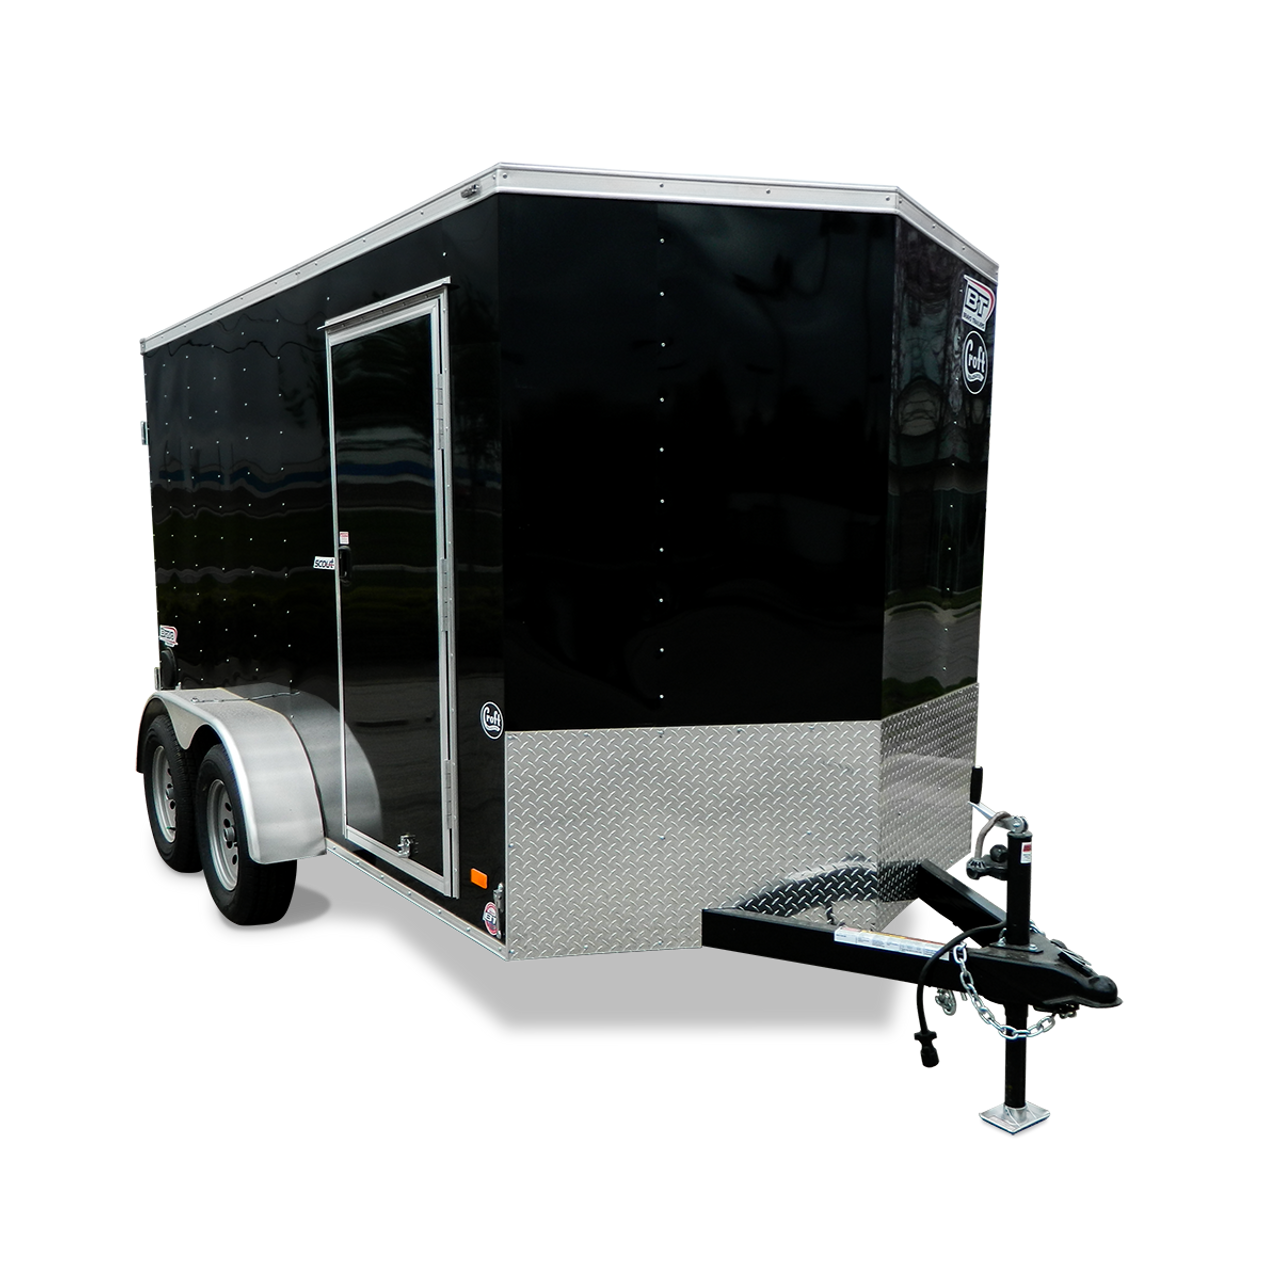 SC612TA2DRD --- 6' X 12' Enclosed Tandem Trailer with Ramp Door - Bravo